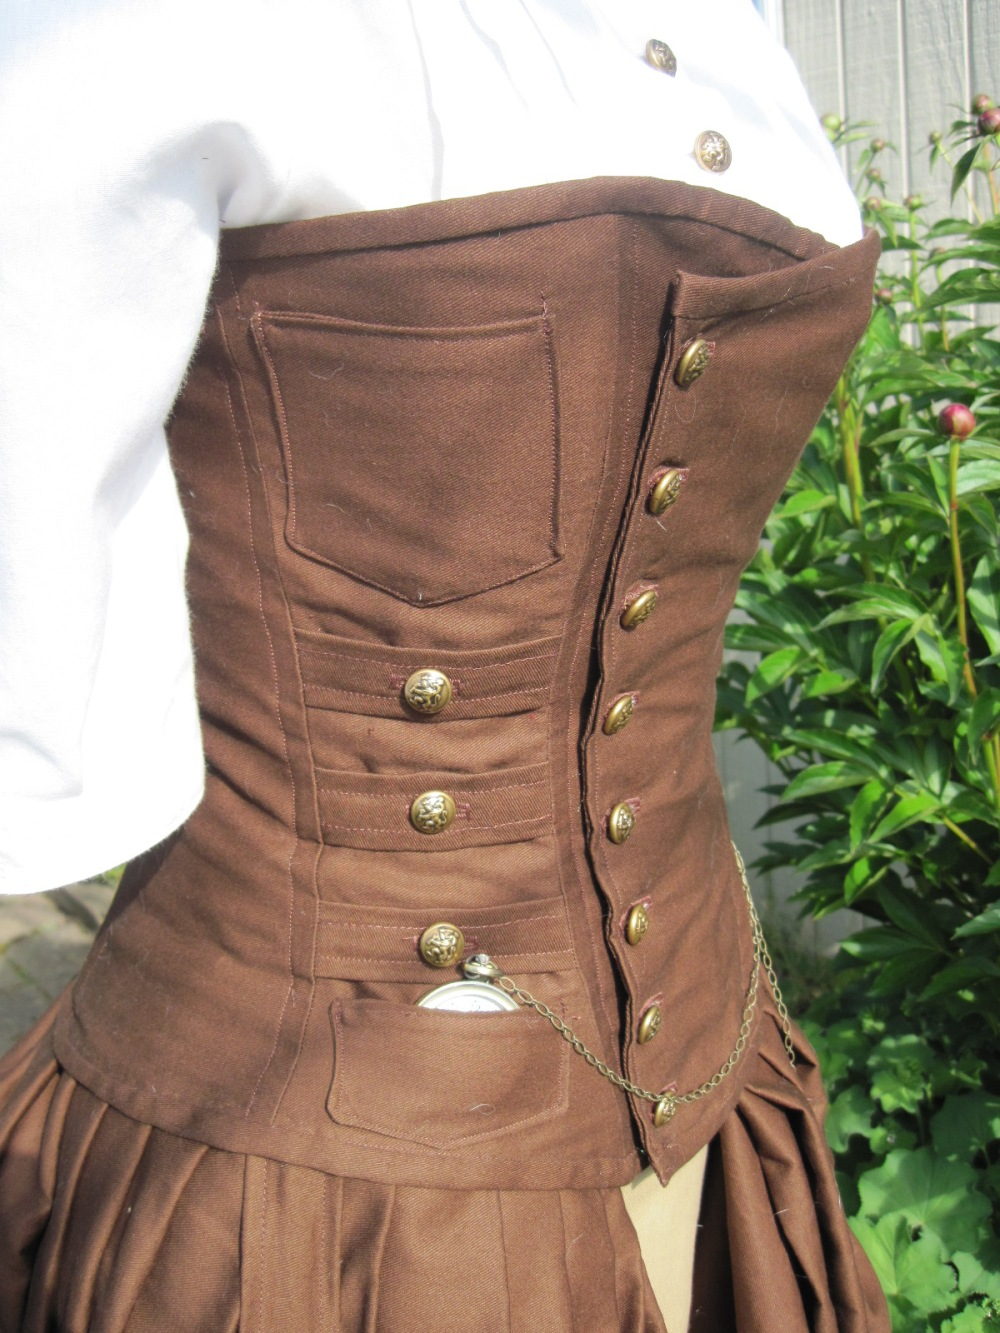 A close up of the corset created by Alisa.